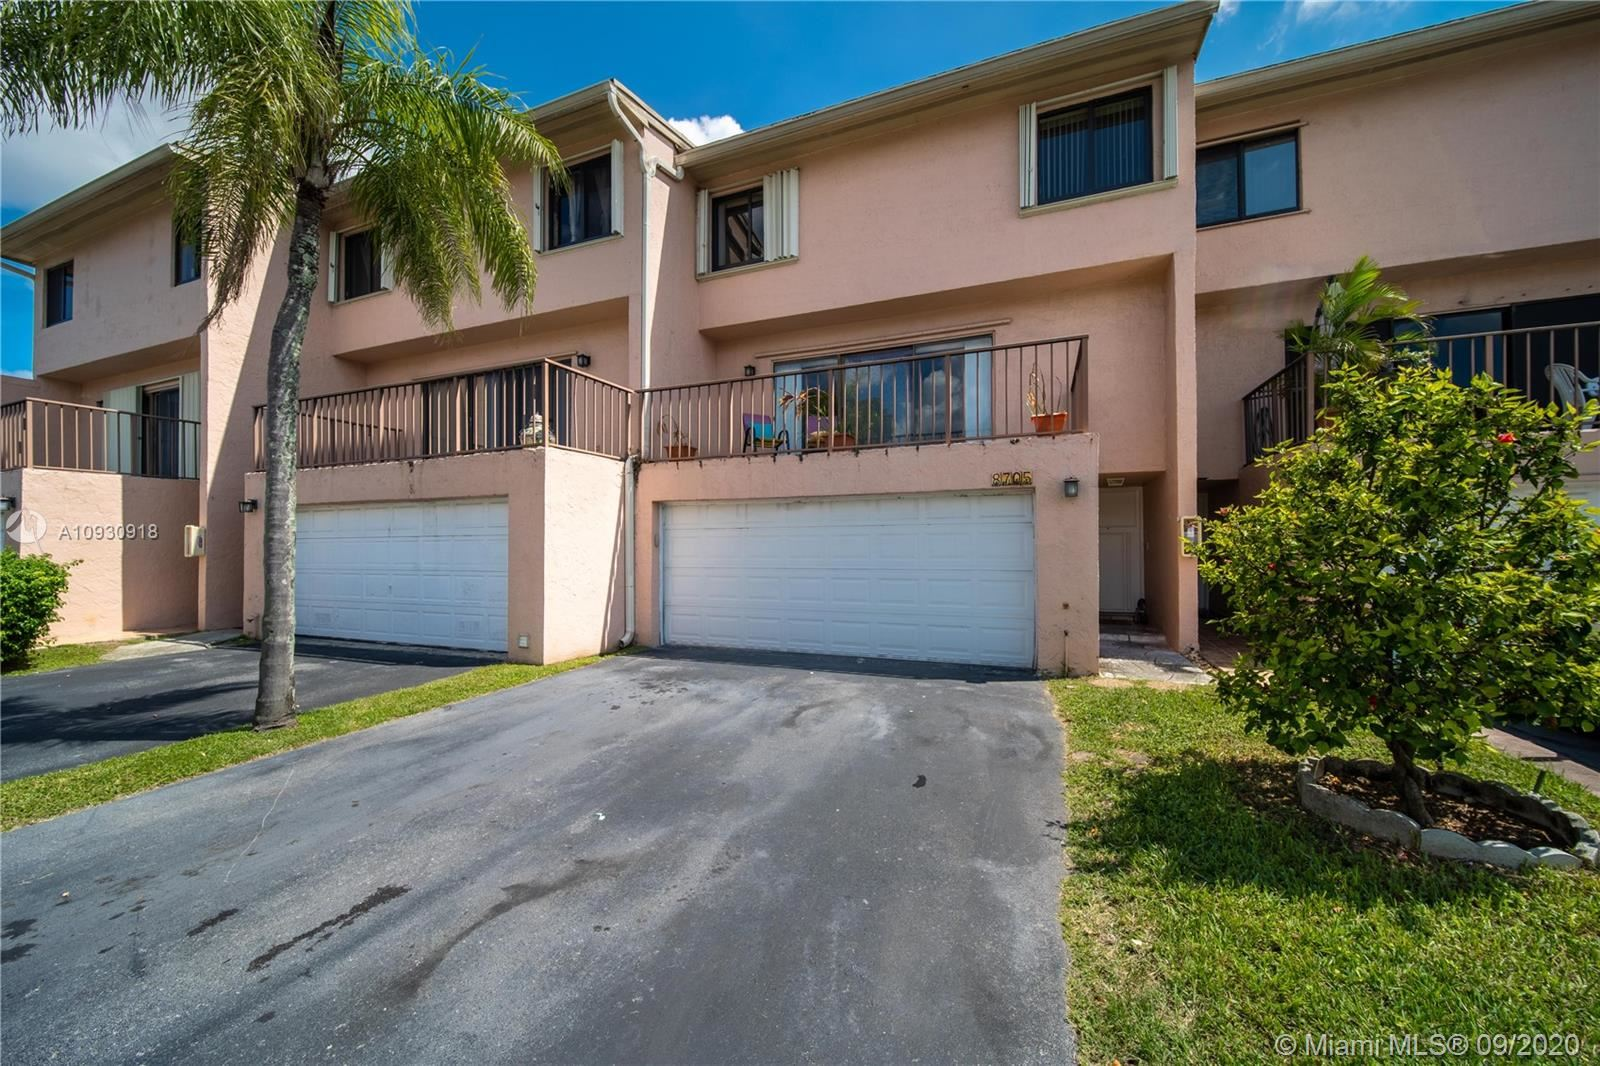 8705 SW 154th Cir Pl #3J, Miami, FL 33193 - #: A10930918